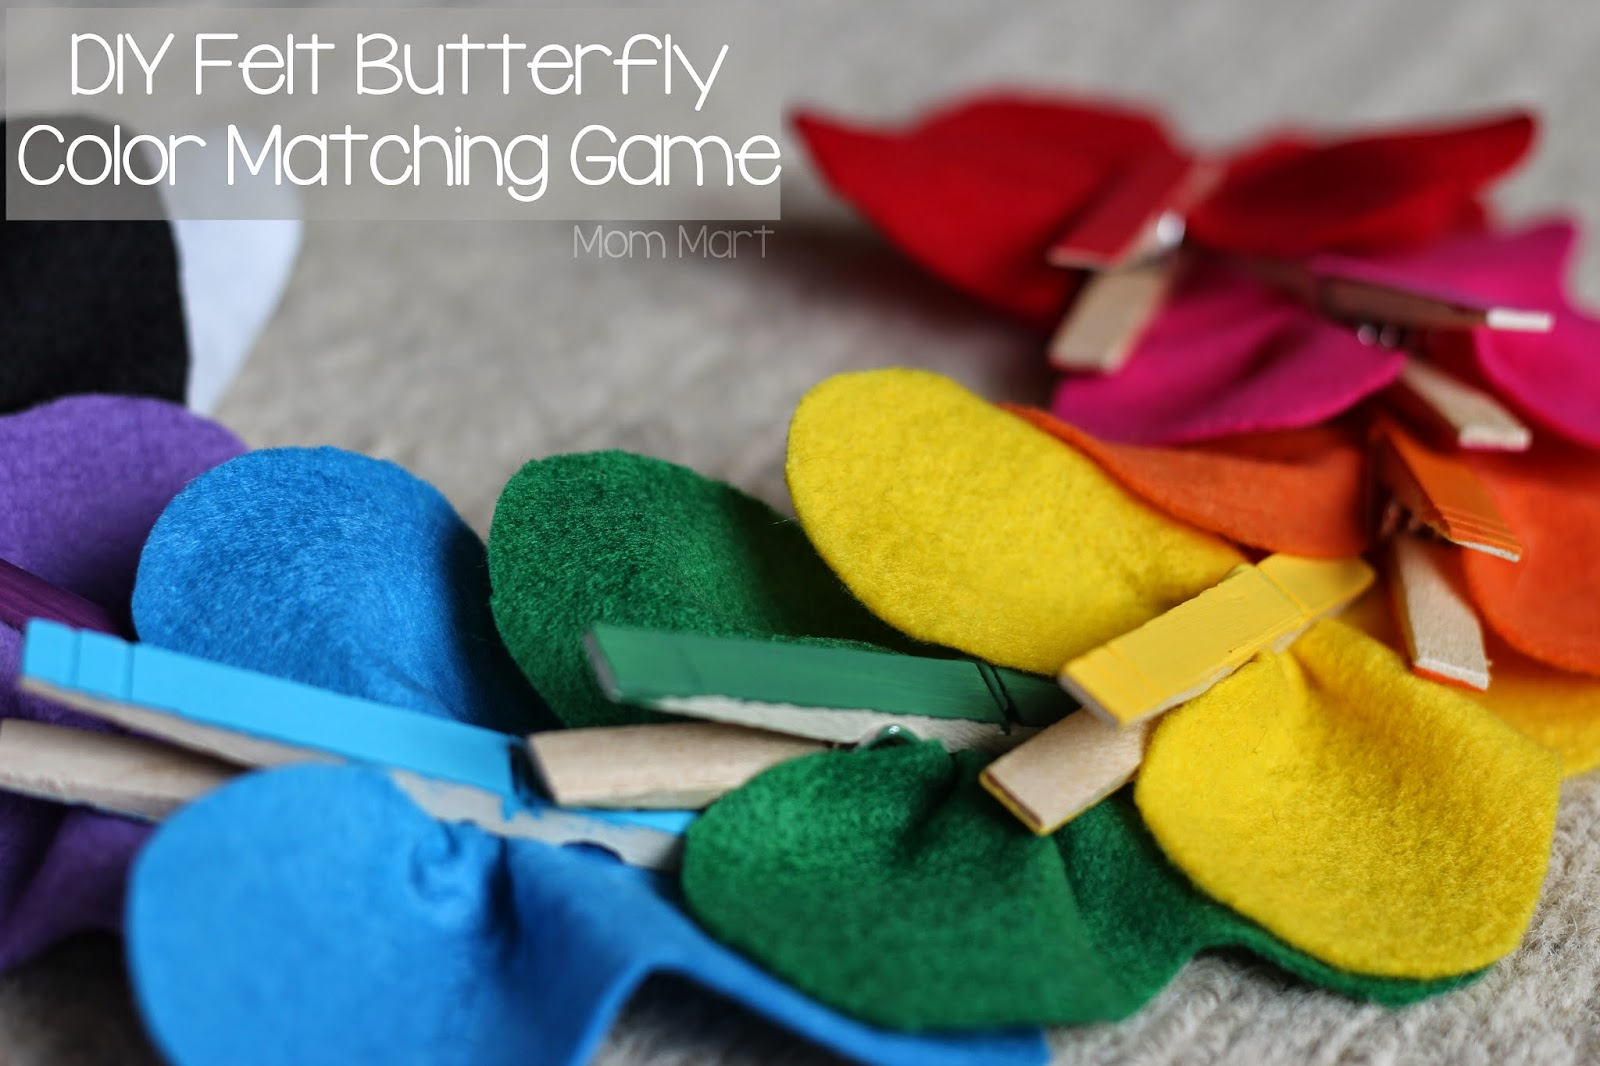 Felt Butterfly Color Matching Game #DIY #Education #GamesForKids #TeachColor